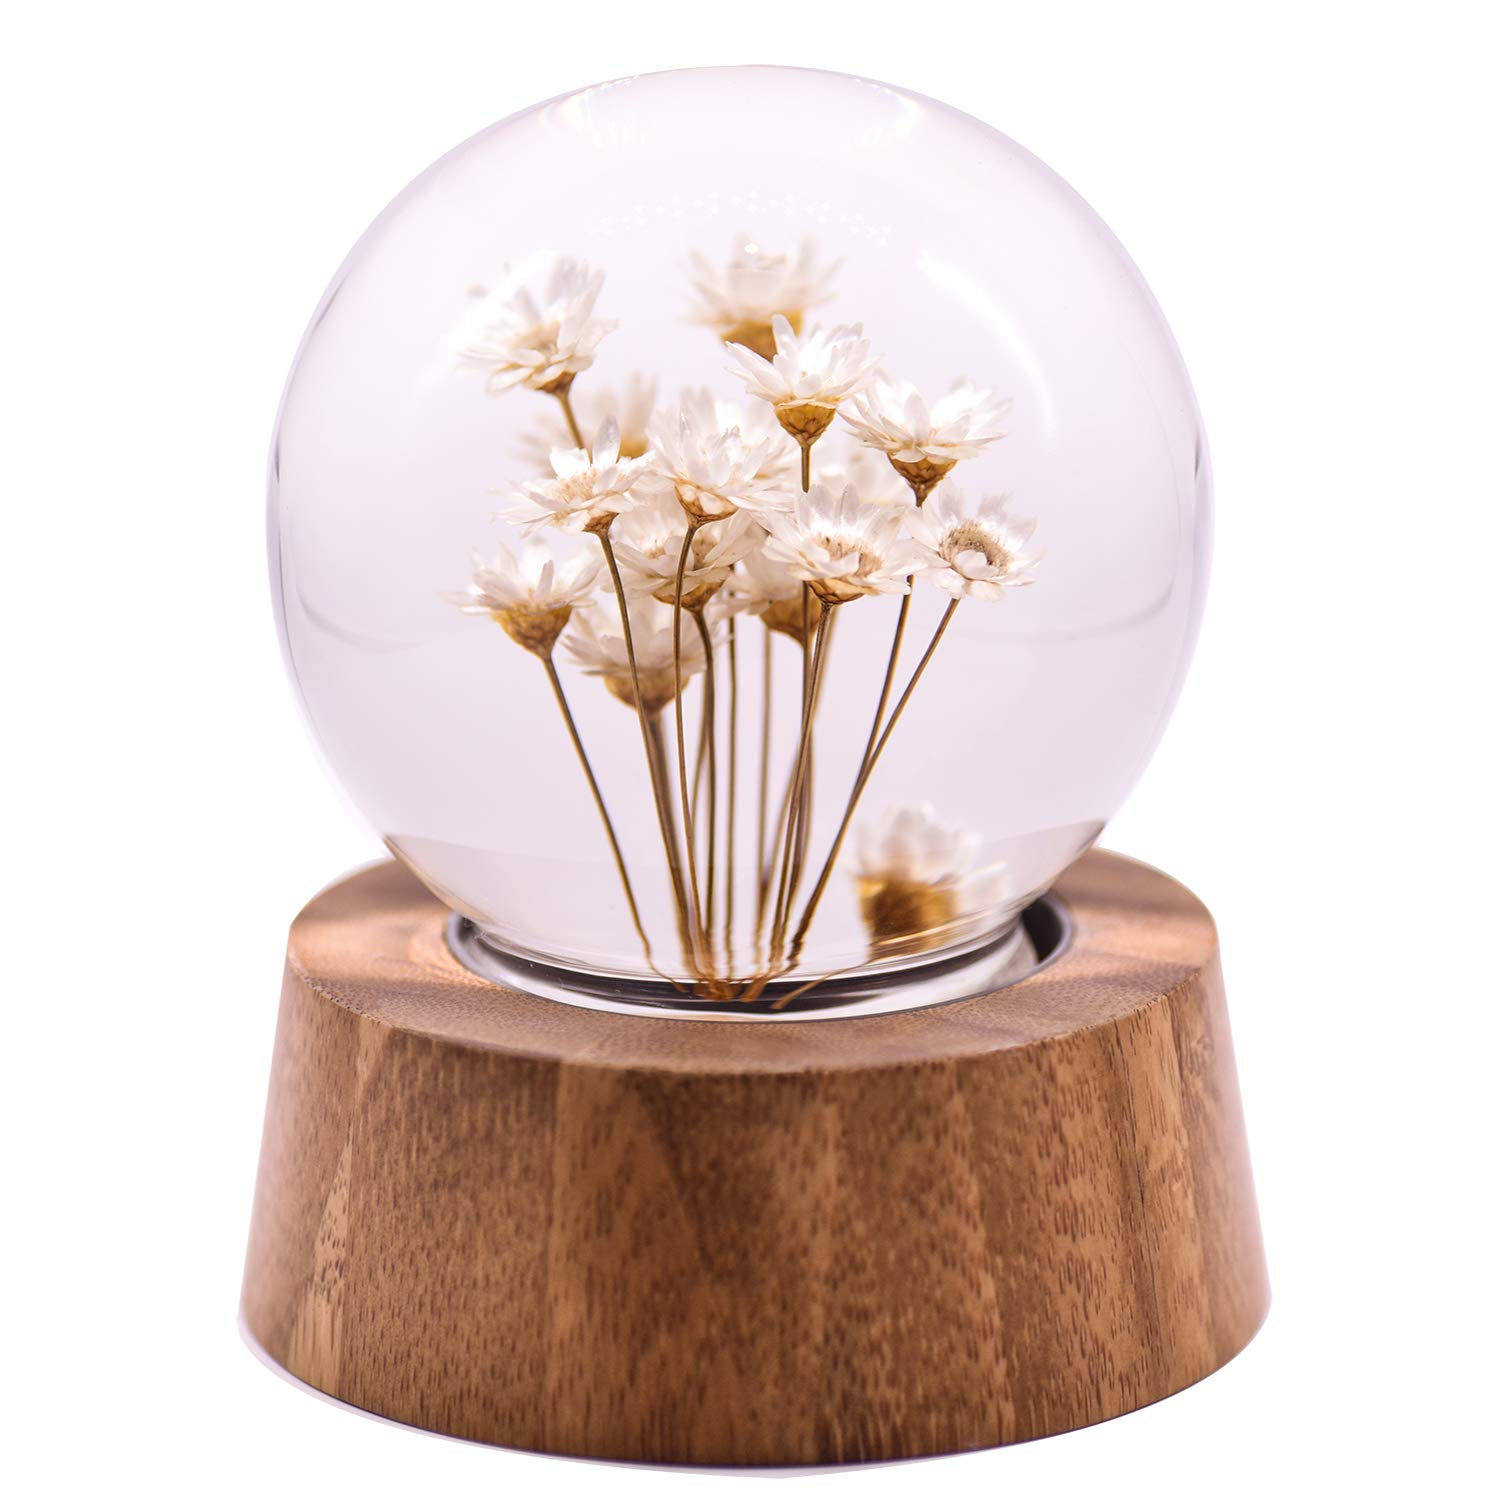 Real Specimens Glass Crystal ball with Wood Base, Everlasting Flower Desktop Ornaments Gift for Christmas/Birthday/Valentine's Day (White Daisy)